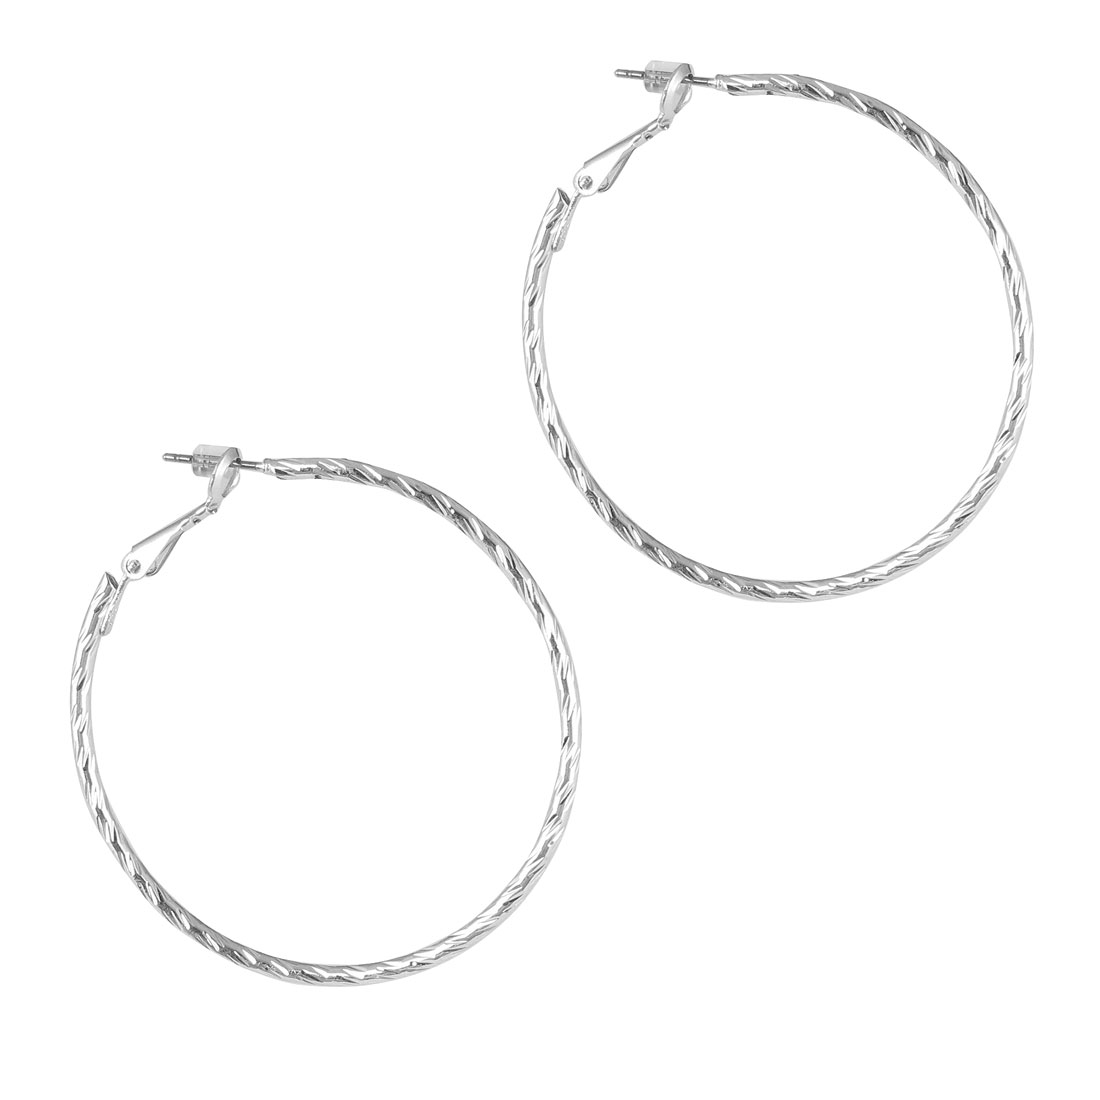 "2"" Dia Silver Tone Metal Narrow Edge Textured Hoop Pierced Earrings Pair for Lady Women"